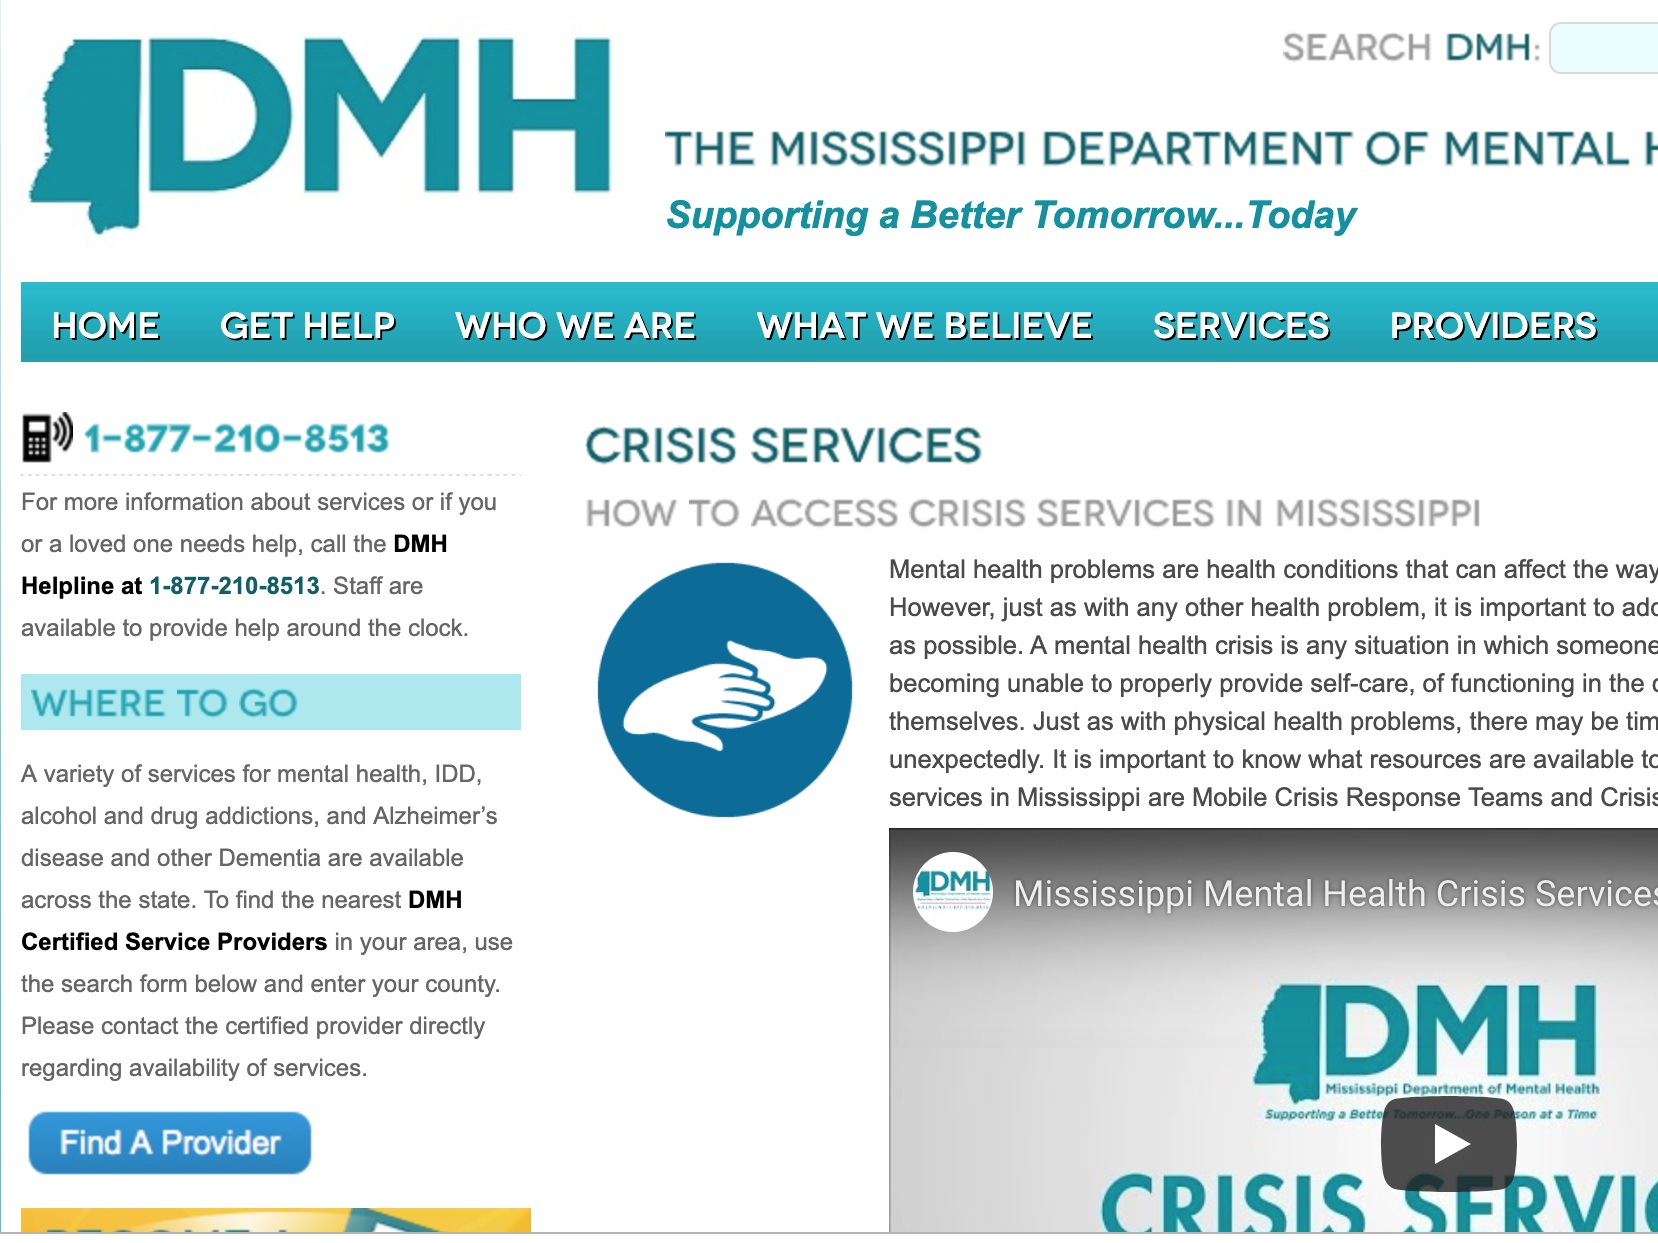 crisis services - The Mississippi Department of Mental Health has many consolidated crisis resources and social service options available on their website.